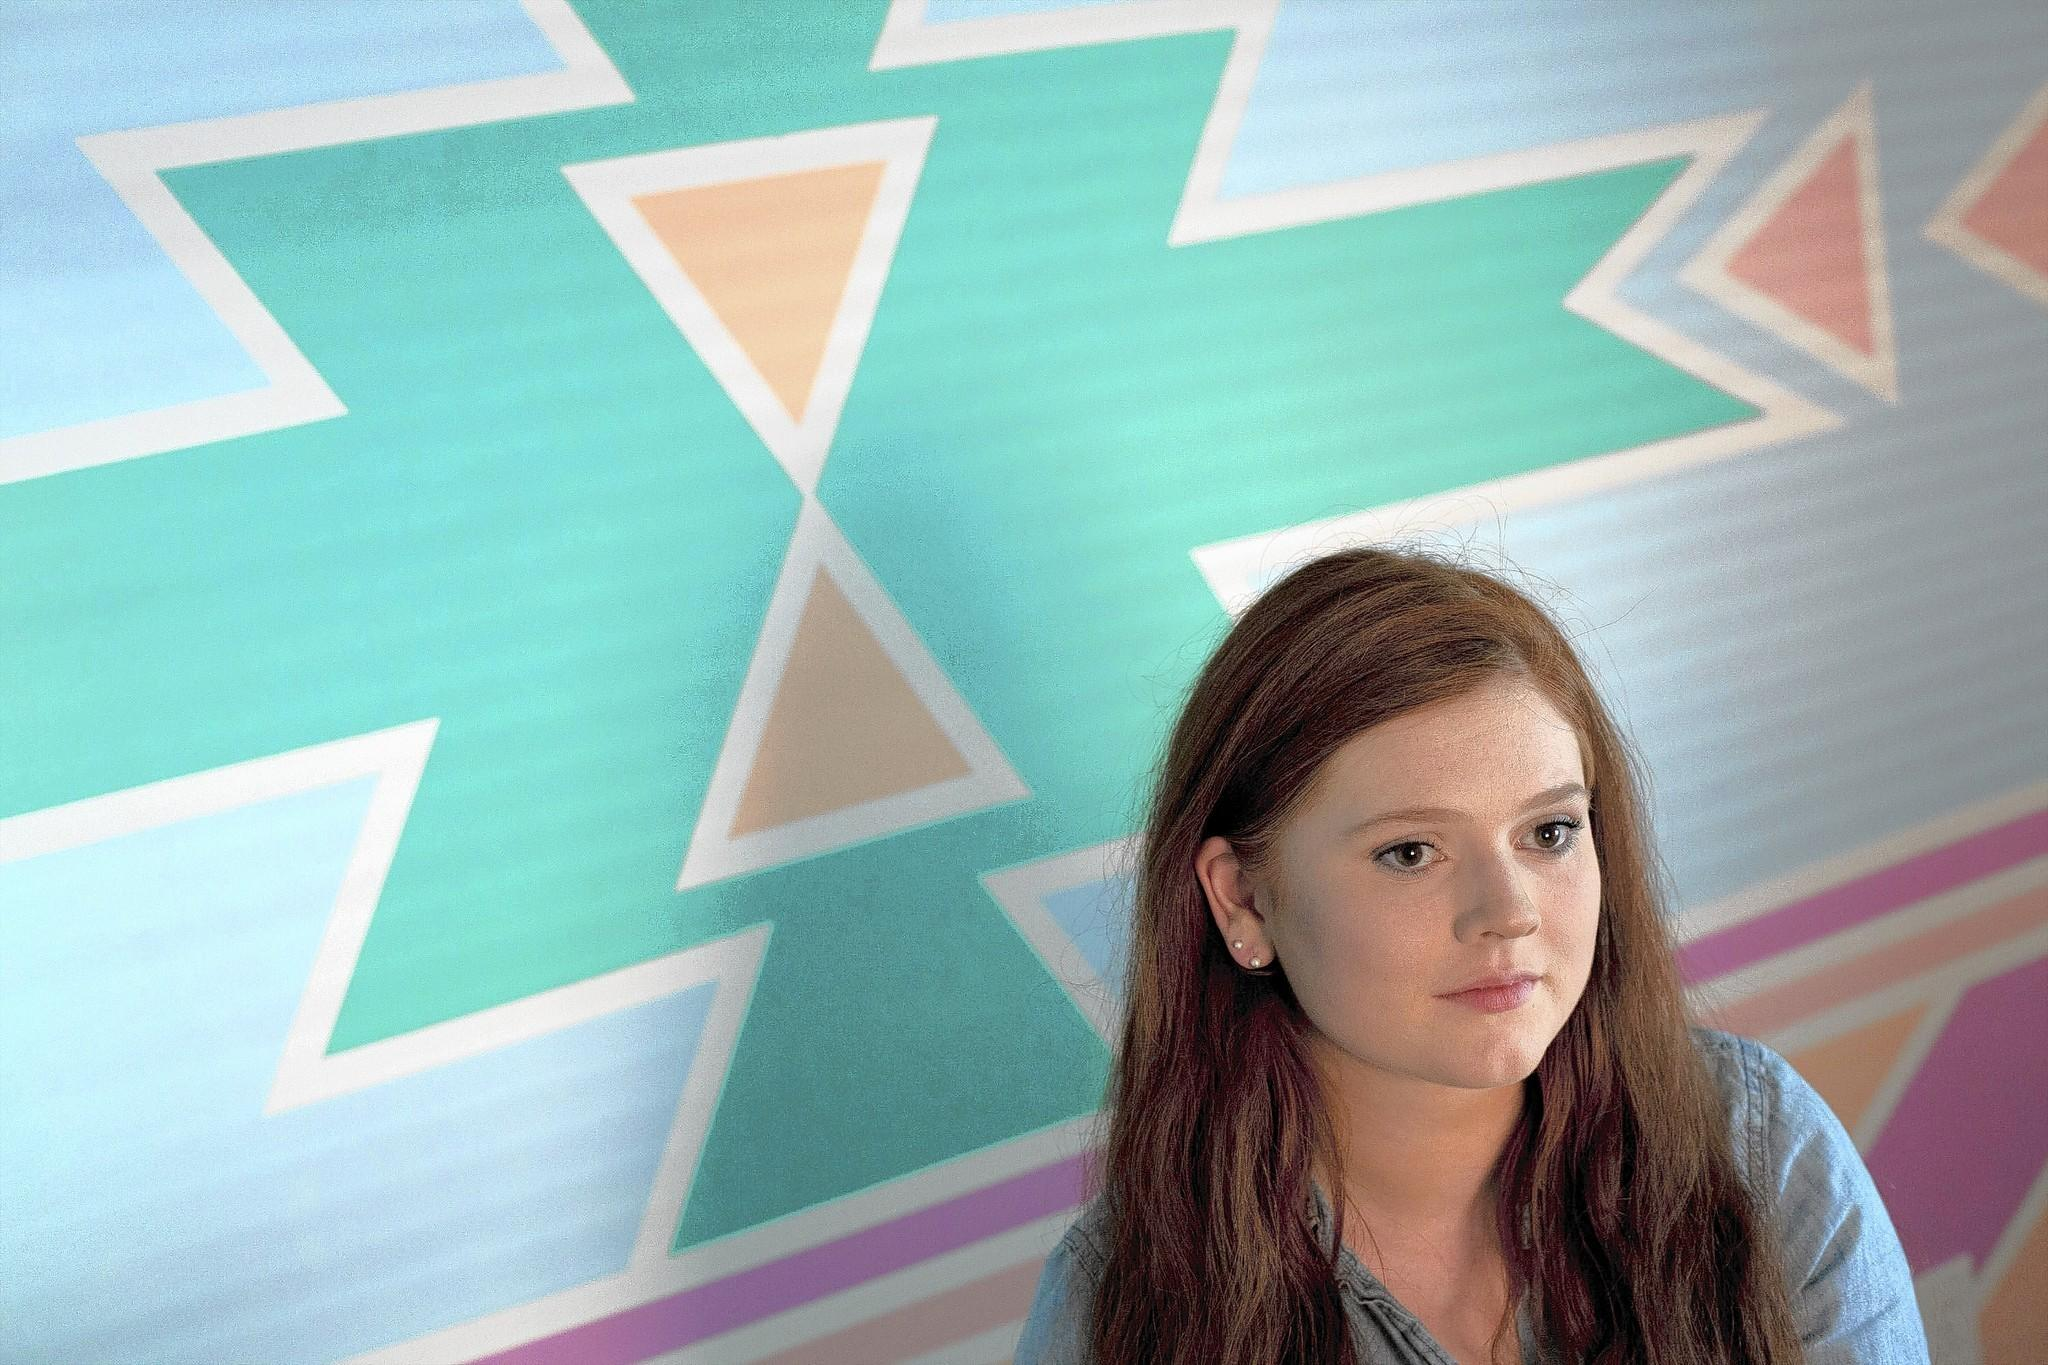 Corinna Henderson in her home studio in Hampton, with a southwest-inspired wall she taped and painted, on August 13, 2014. Henderson won third place in the fourth annual DIY Frog Tape competition and took home a prize of $1,000.